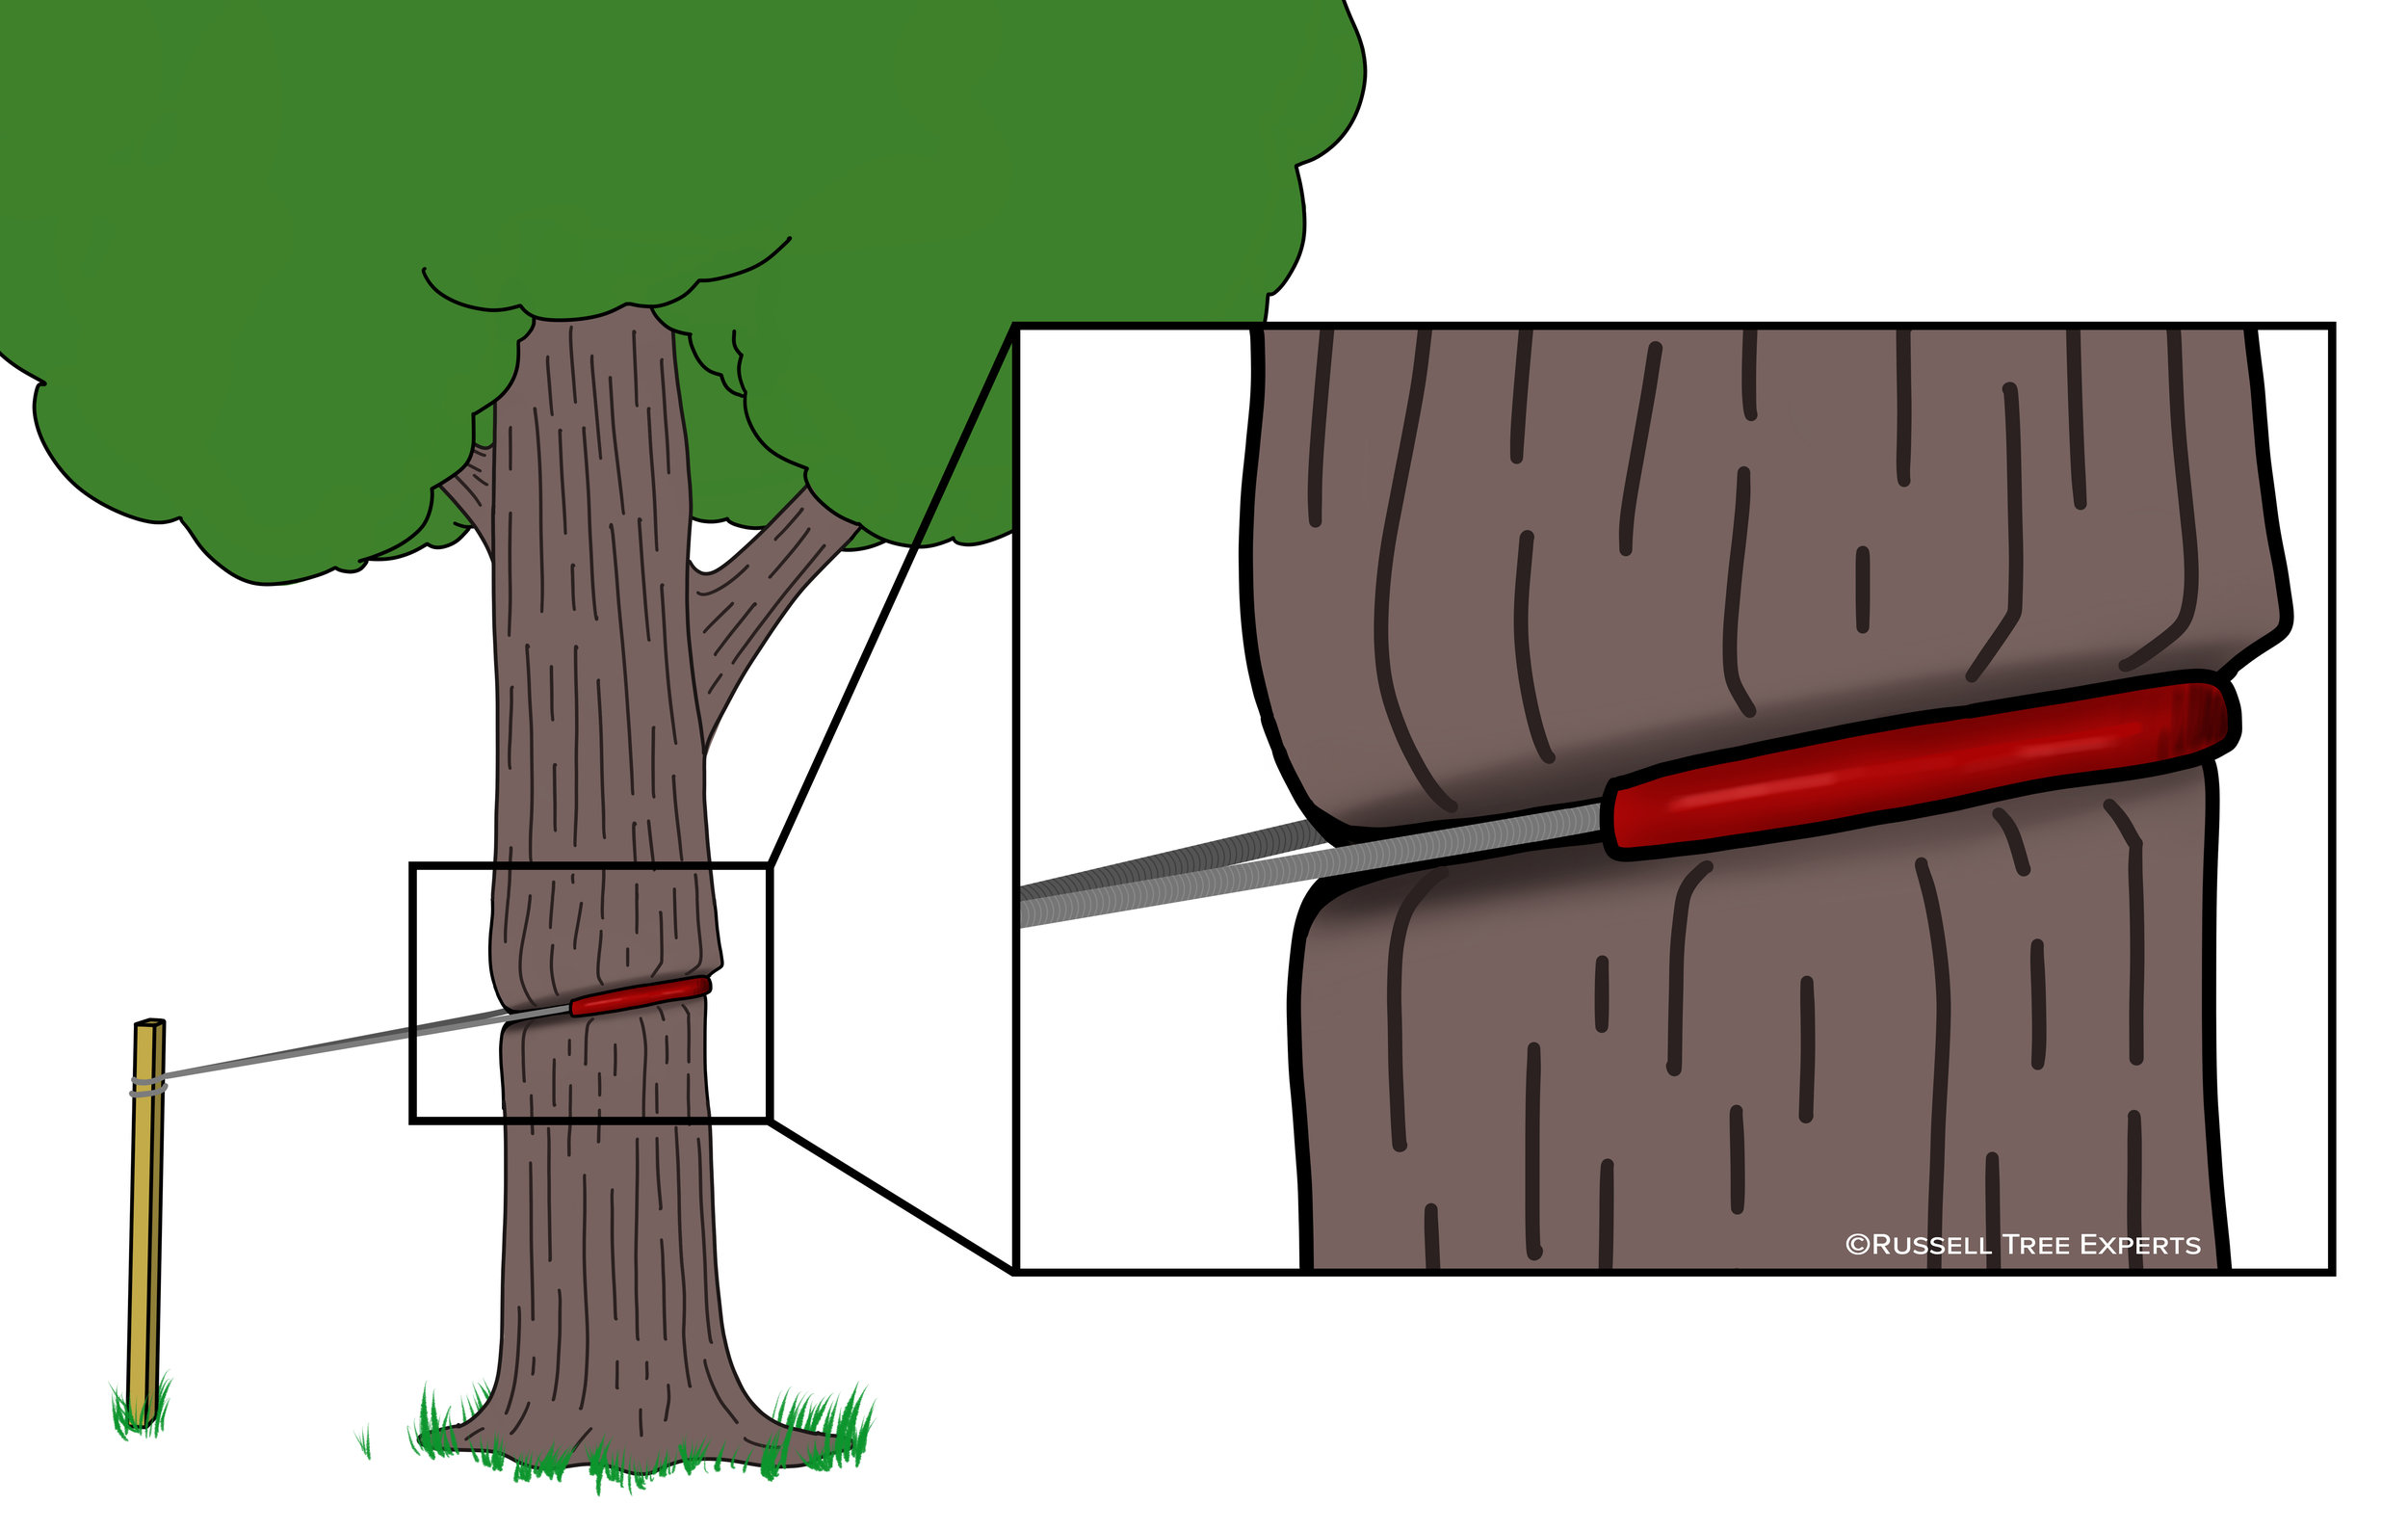 Illustration of a tree being girdled by a guy wire. ©Russell Tree Experts